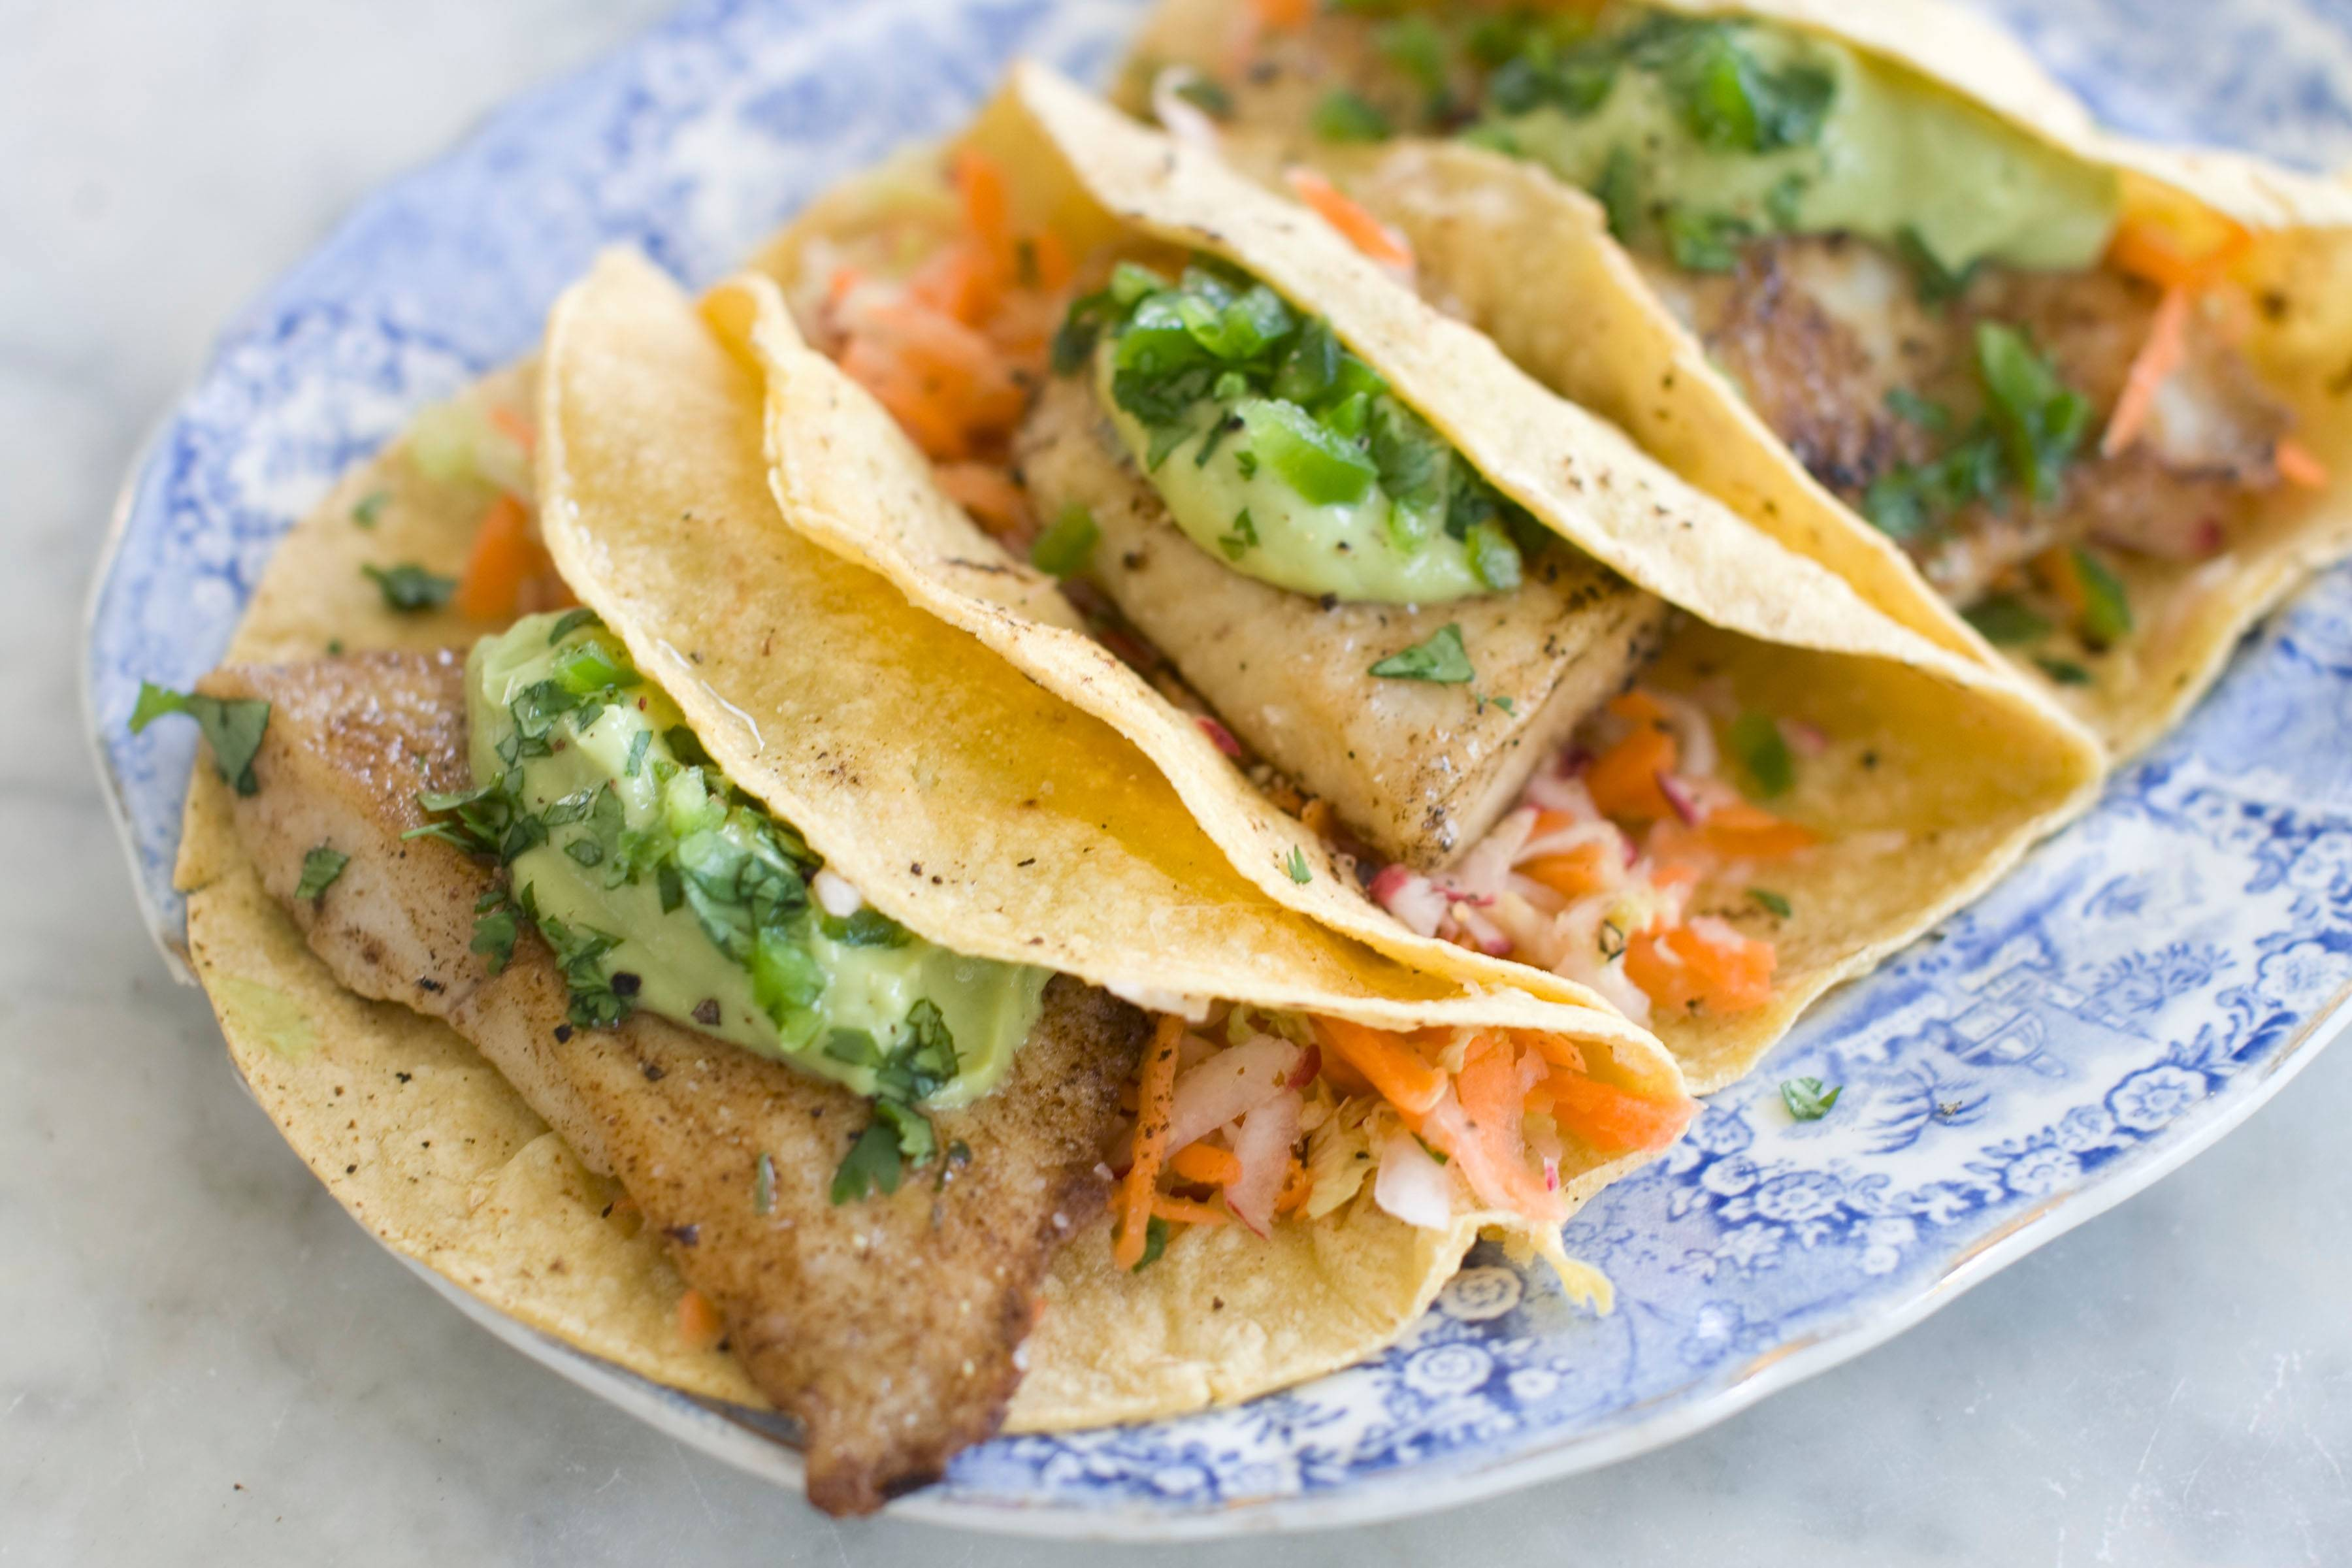 Avocado-buttermilk cream and carro slaw make tilapia tacos all the more tasty.